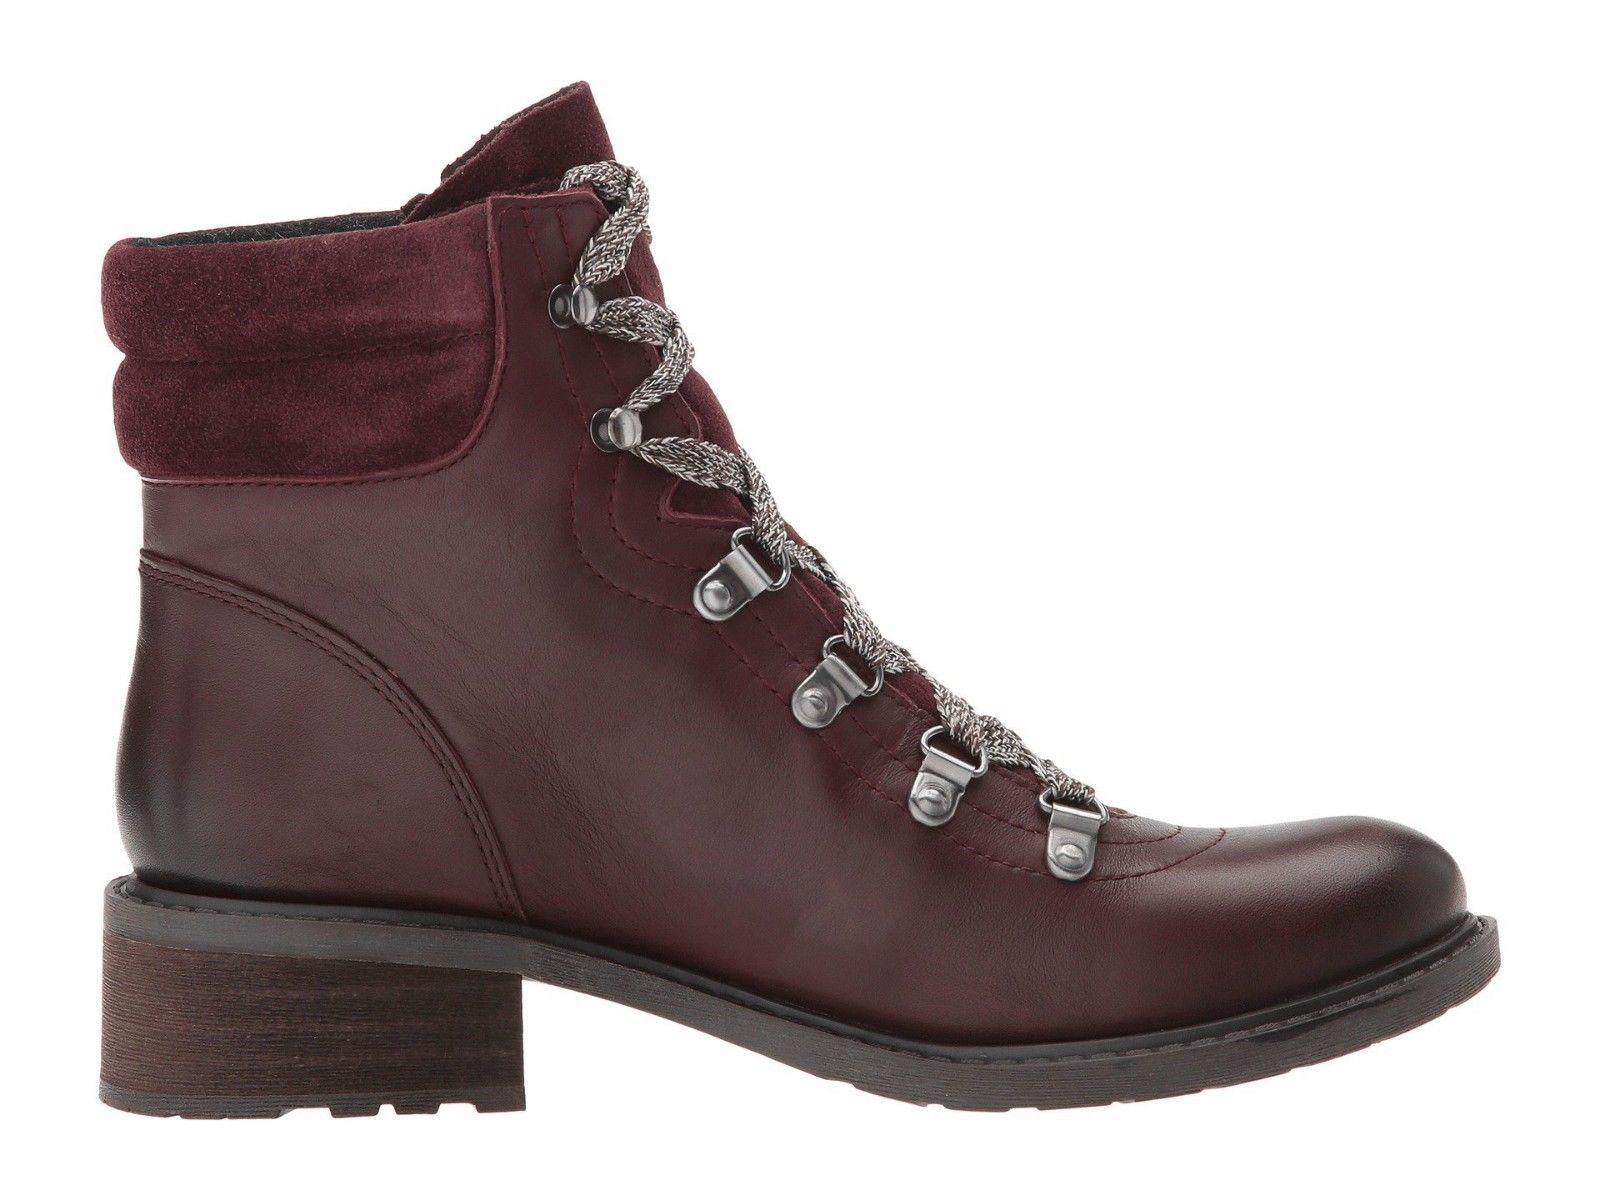 de177f33aa77f0 Sam Edelman Darrah Lace Up Boot Wine and 50 similar items